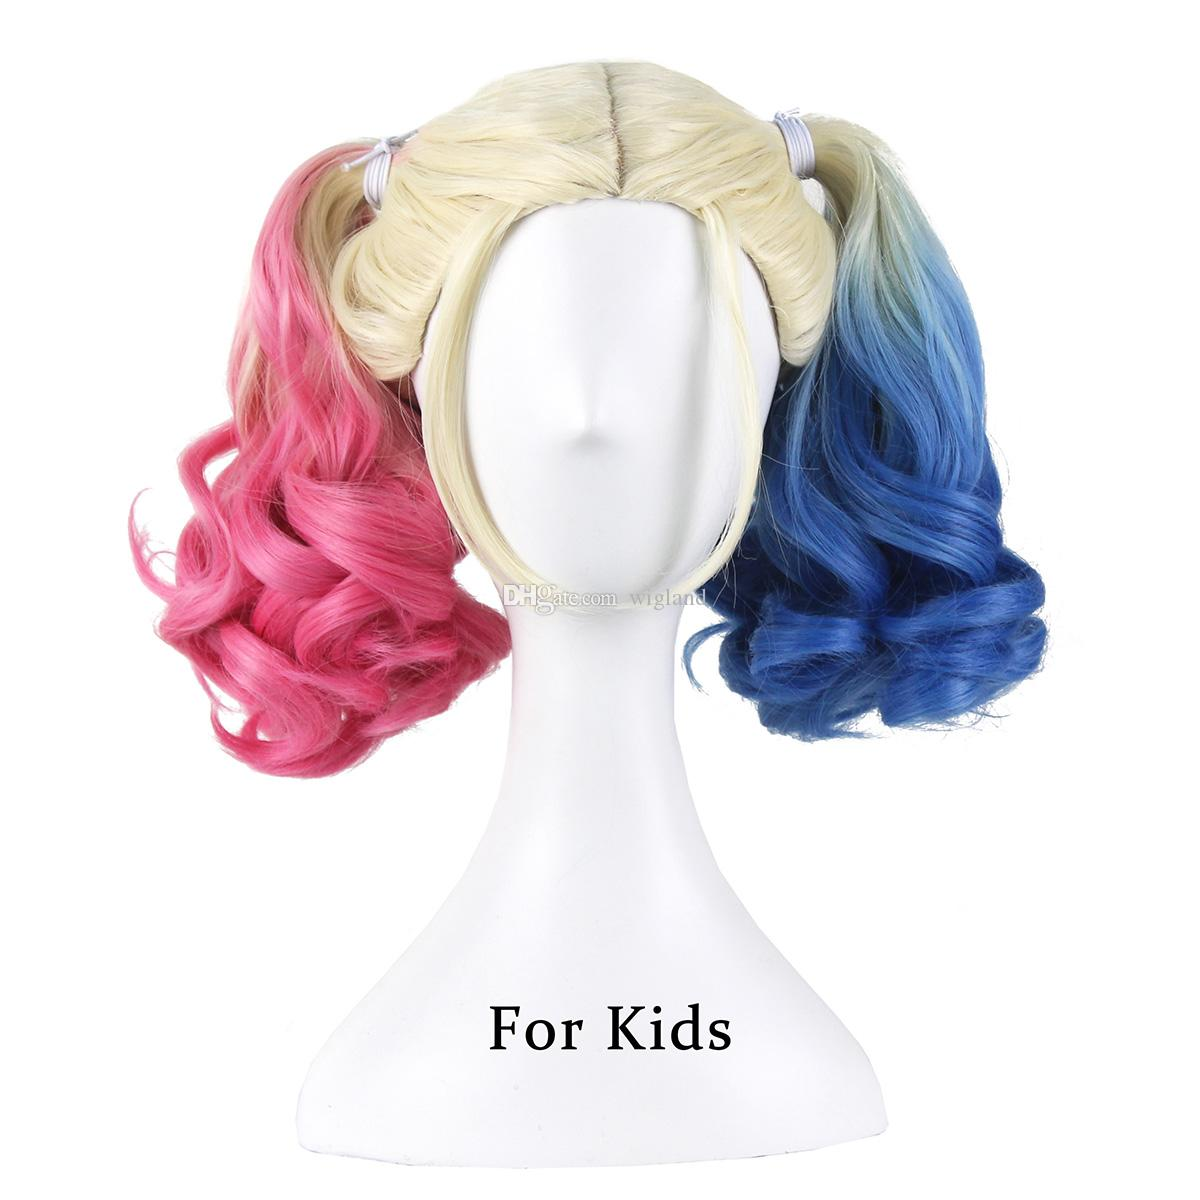 Harley Quinn Wig For Kids Blue And Pink And Blondedyed